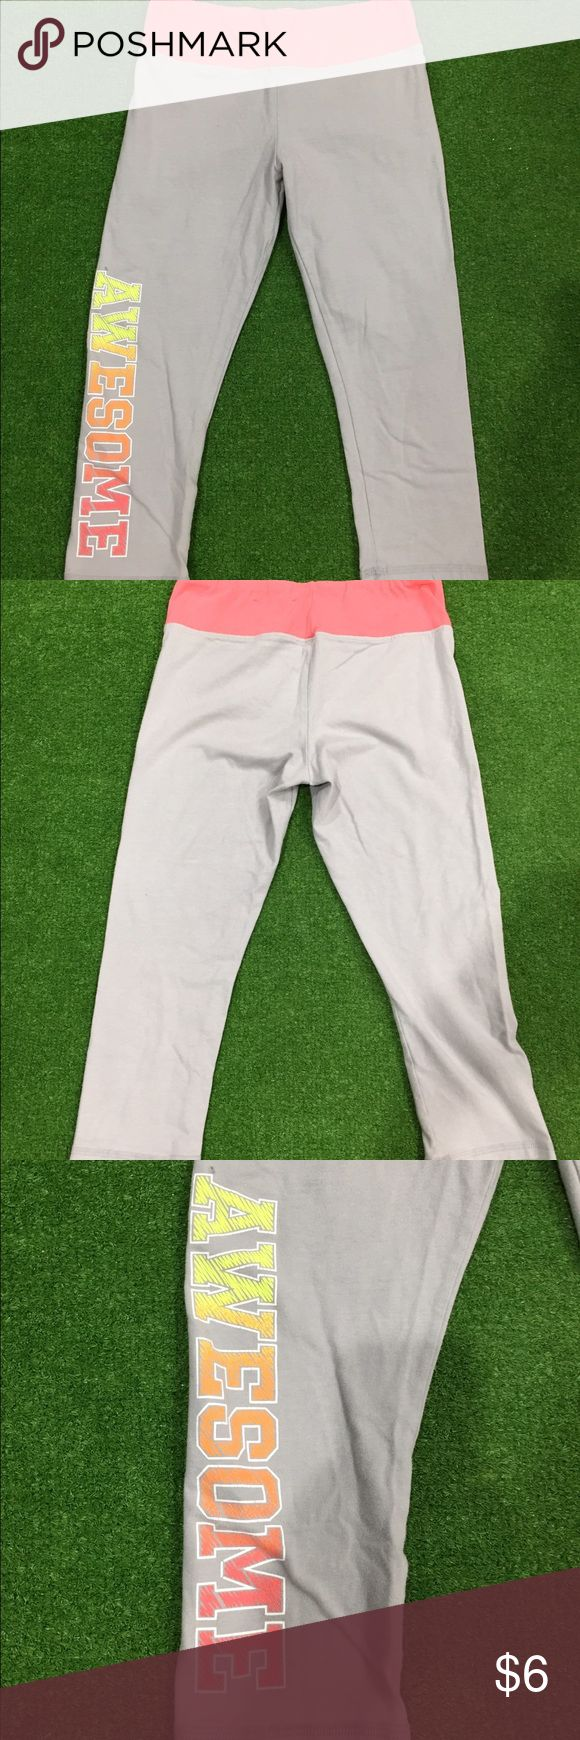 Pink and Gray Athletic Capris These are a size large and they say 'Awesome' down the leg. They're in great shape and very cute. Danskin Bottoms Leggings